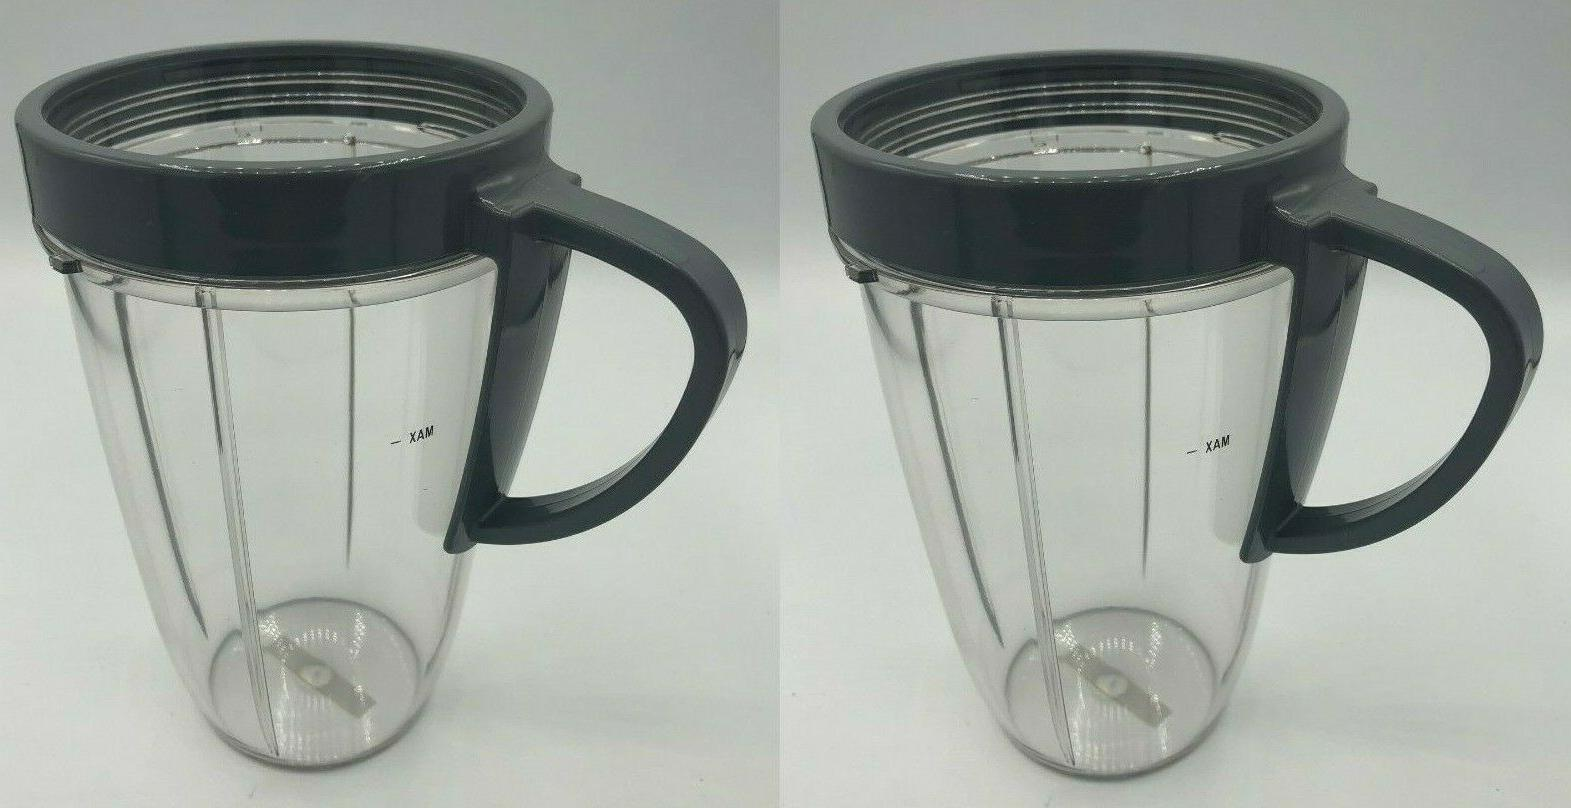 2 x NutriBullet Nutri Bullet 24 OZ Tall Cup with Handled Lip